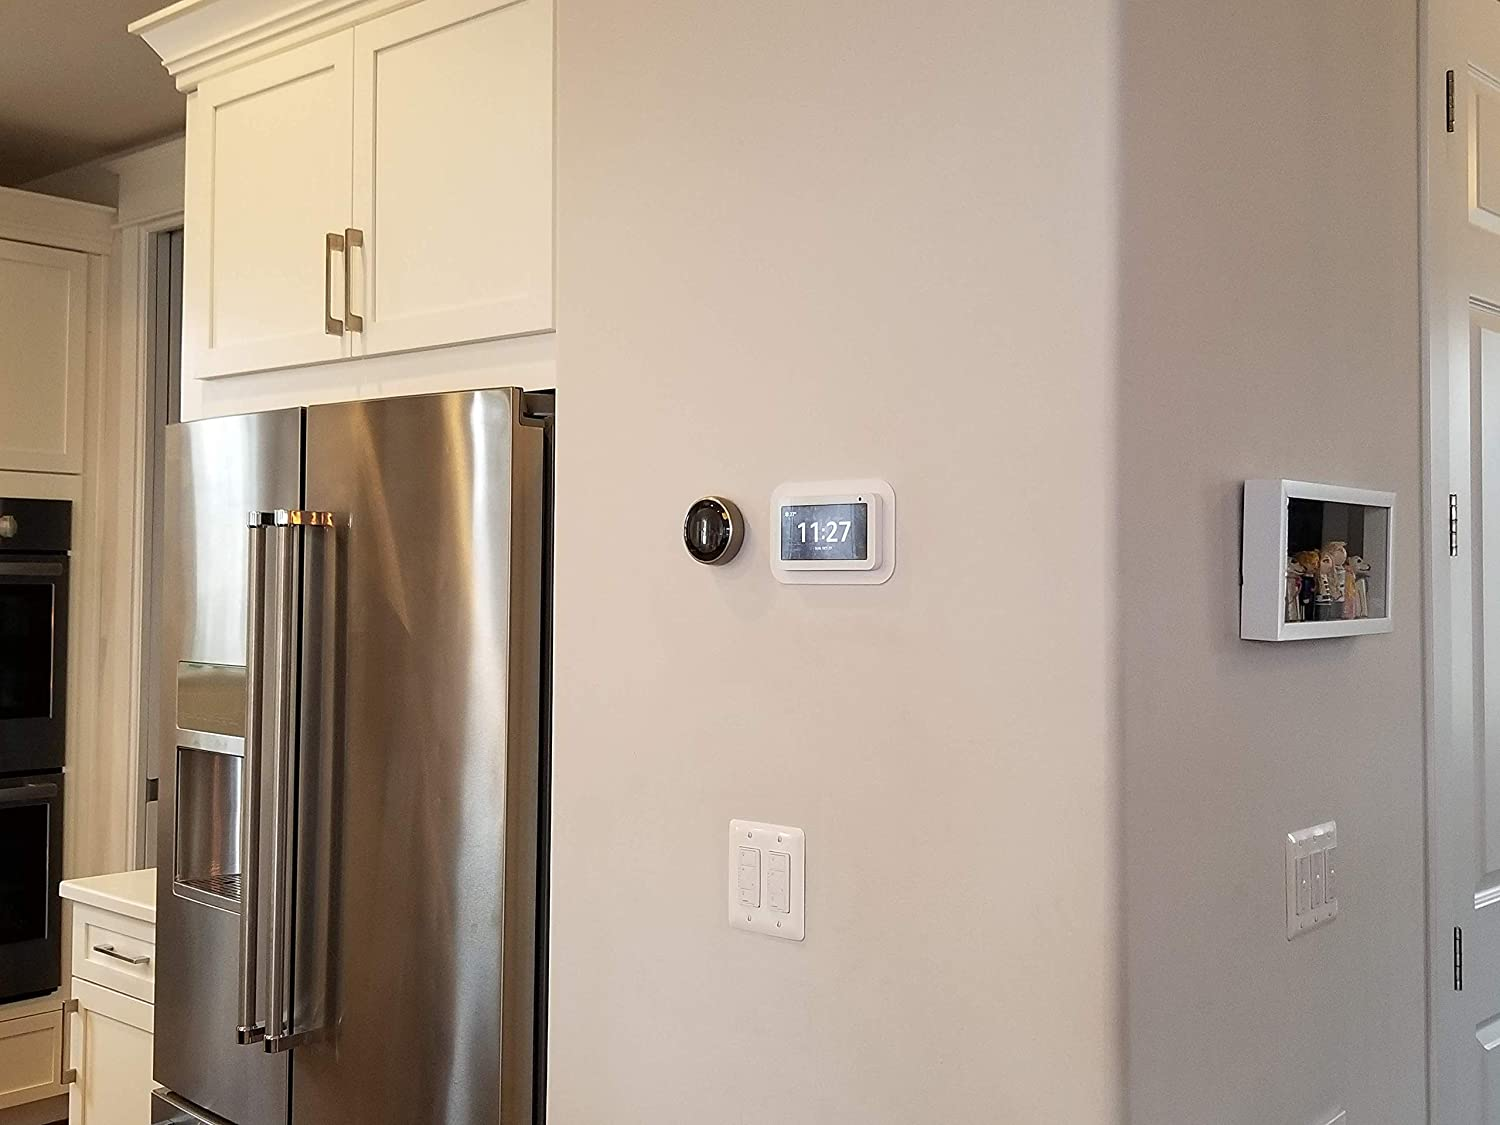 PoE Option Available Mount Genie Simple Built-in Show 5 Wall Mount The Perfect Smart Home Command Center